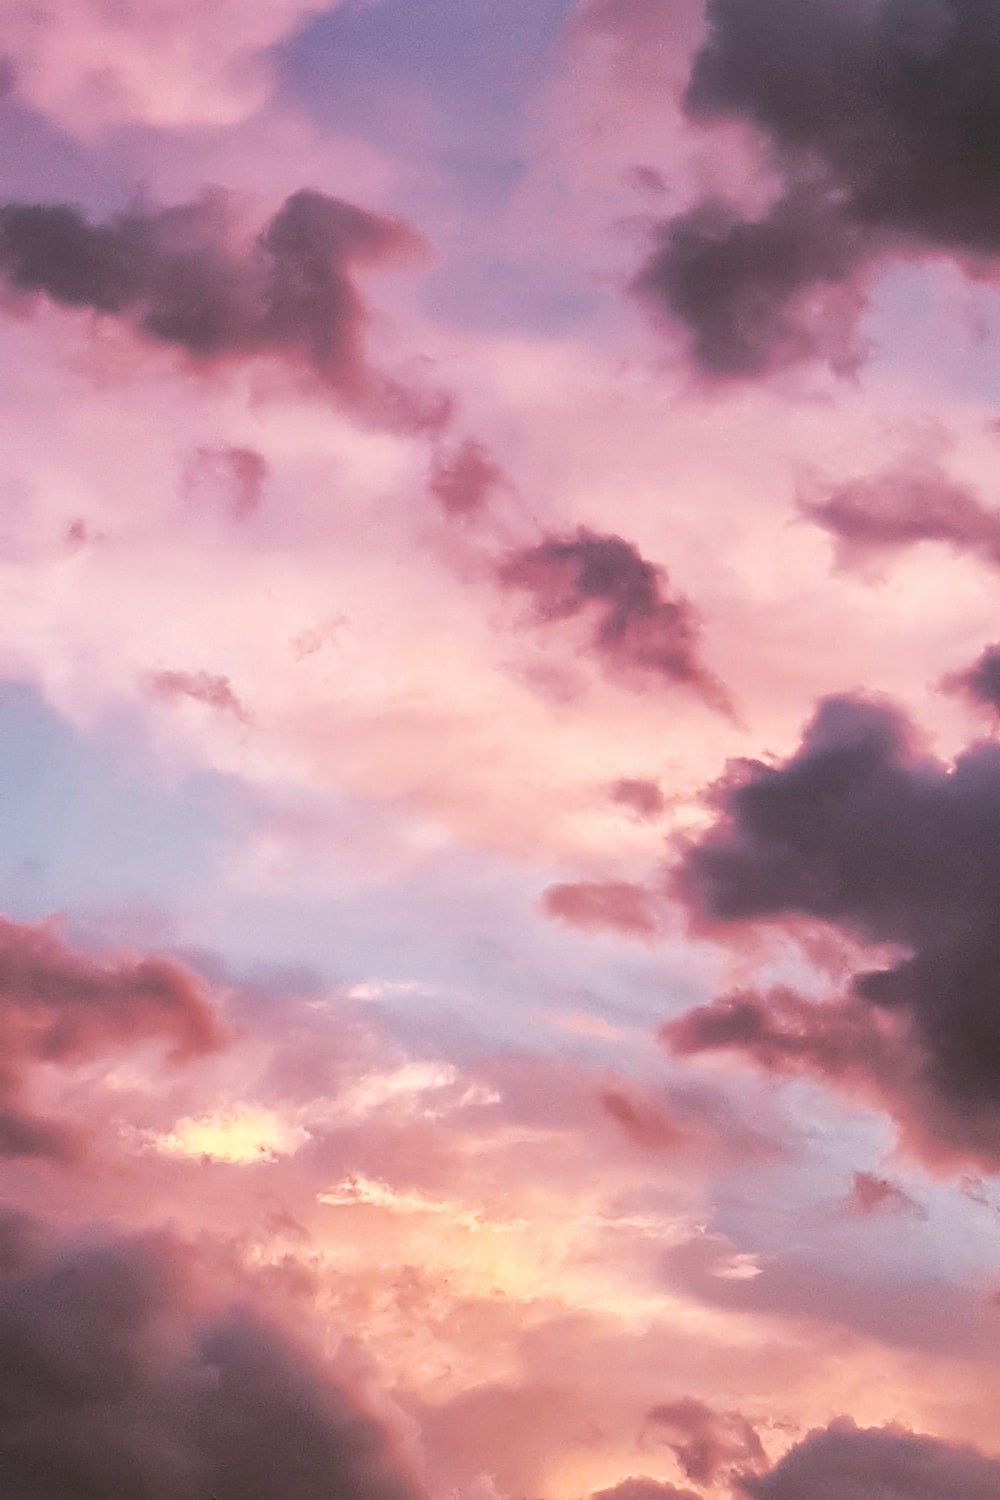 550 Pink Aesthetic Pictures Download Free Images On Unsplash